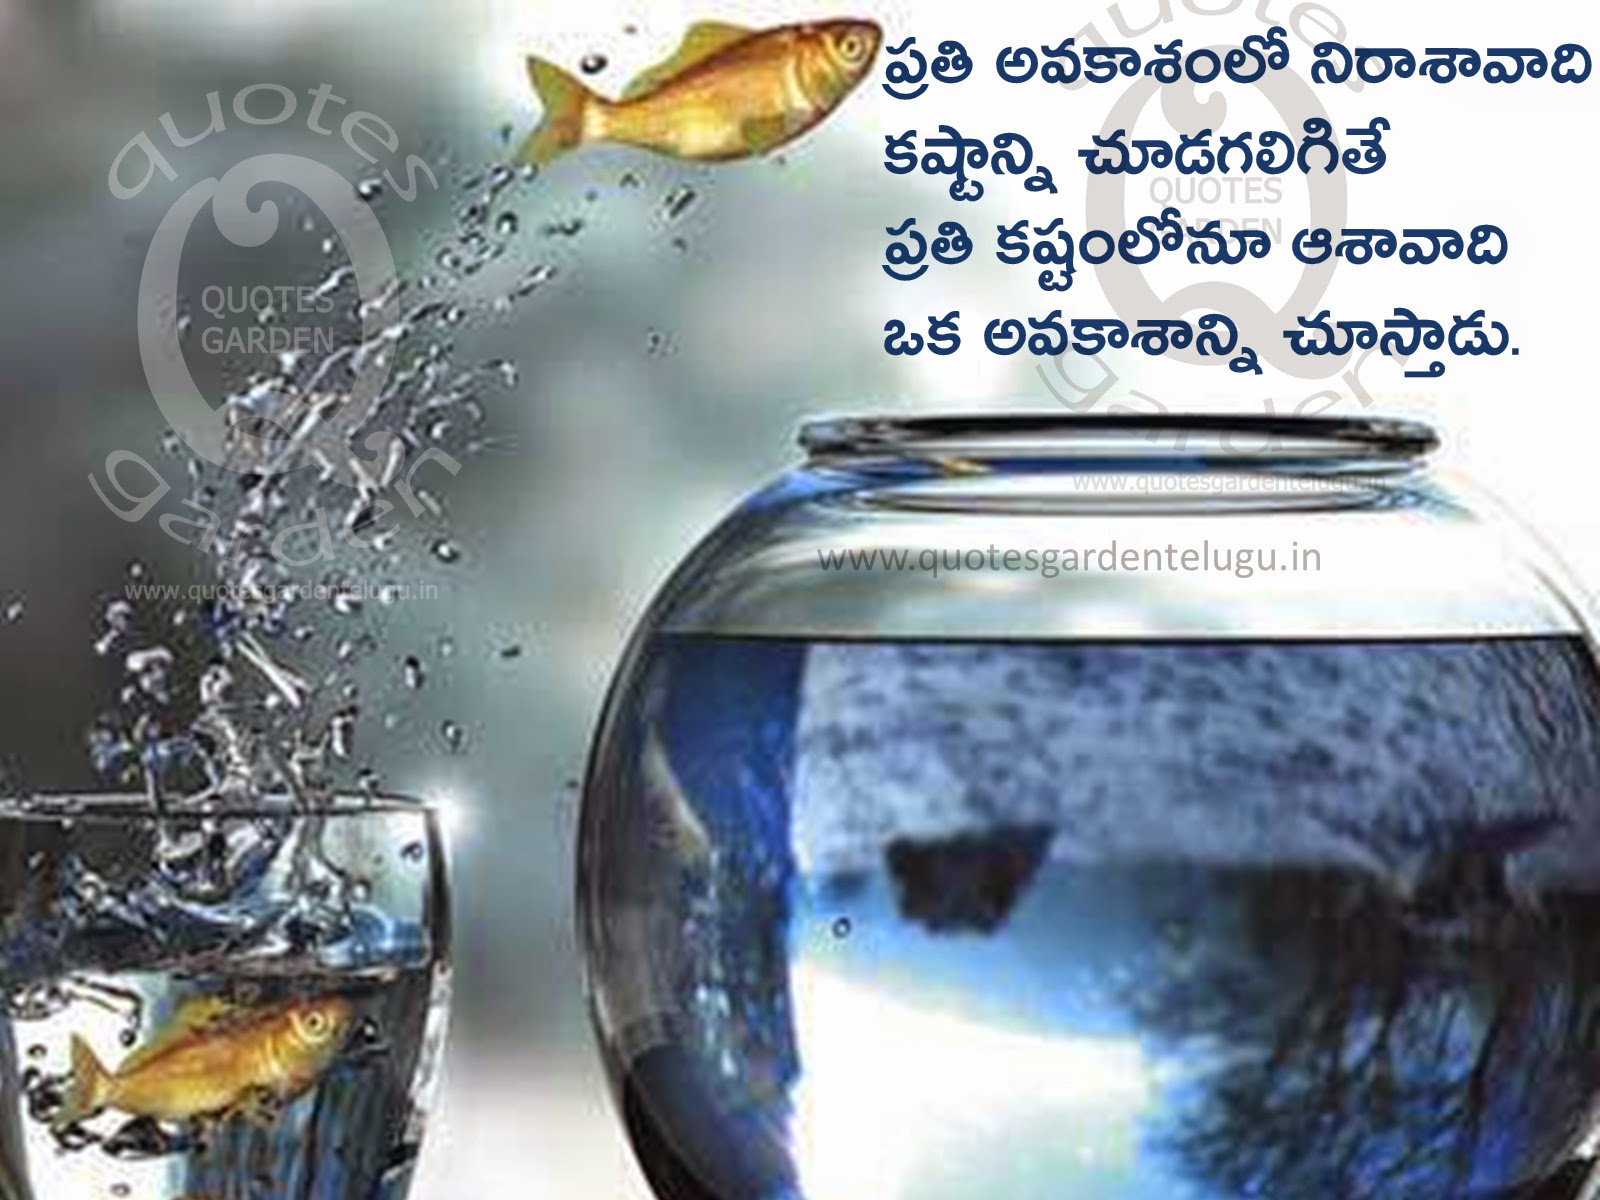 Nice Telugu awesome inspiational hd images wallpapers with telugu inspiraitonal motivational life qutoes